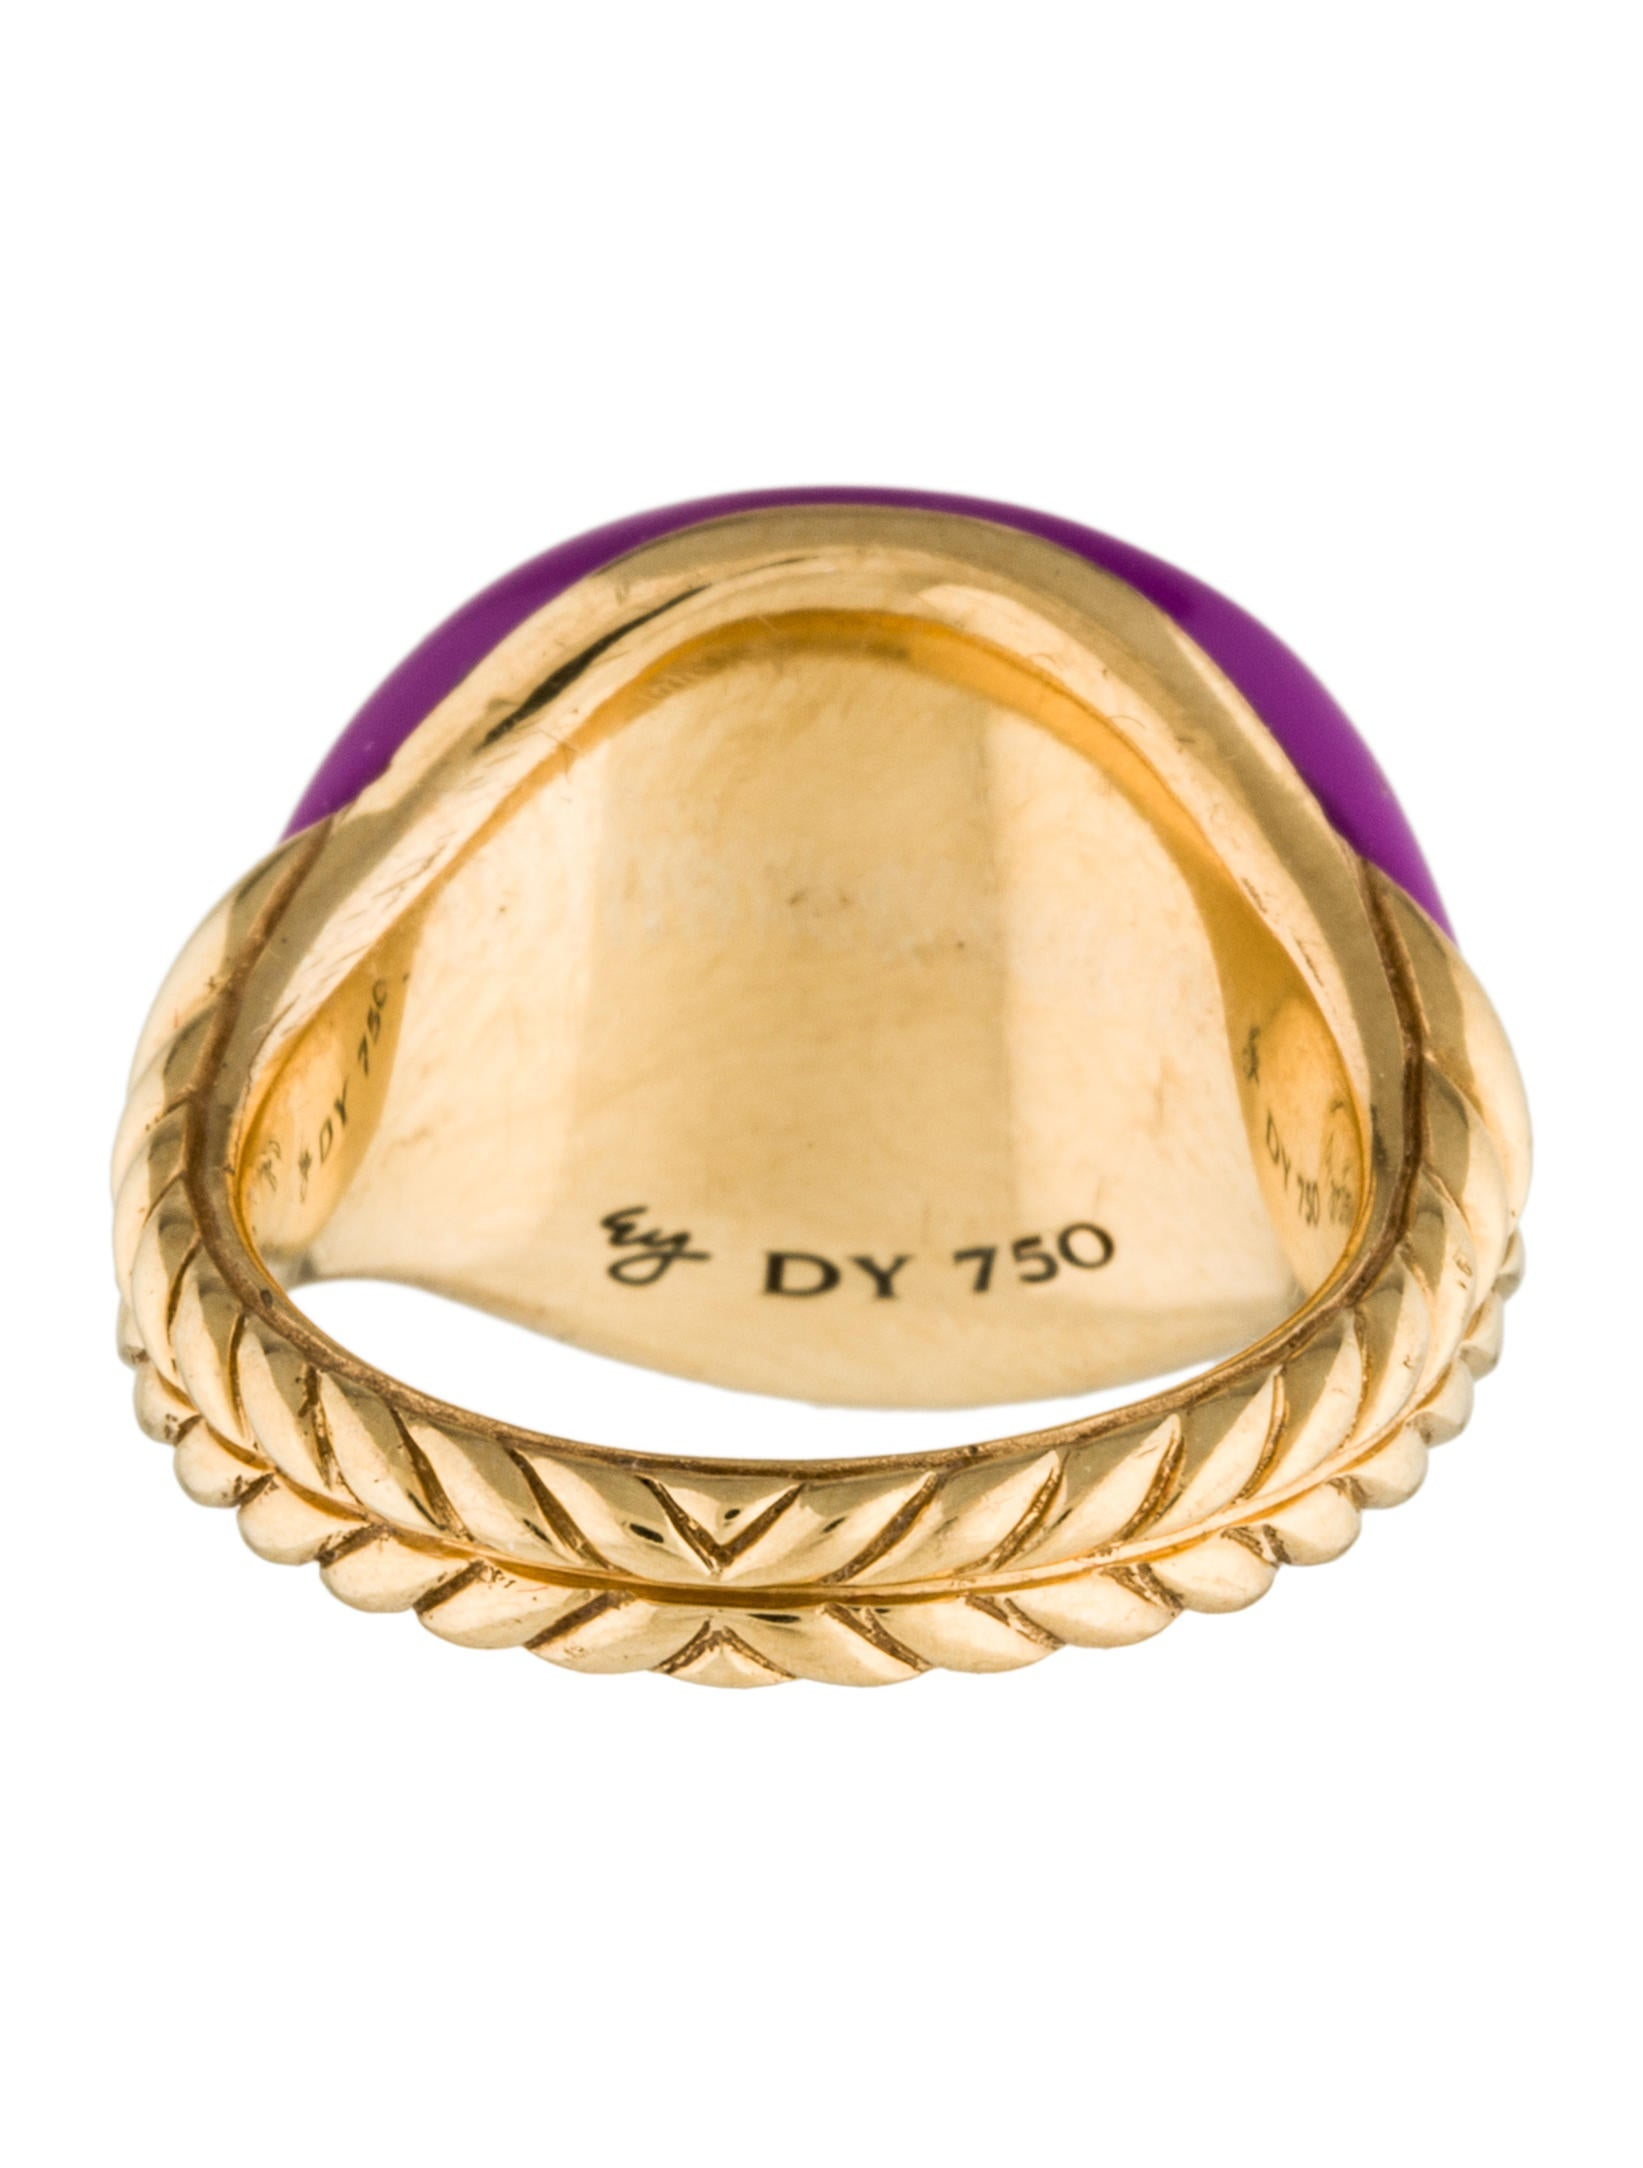 David Yurman Ring Is It Real